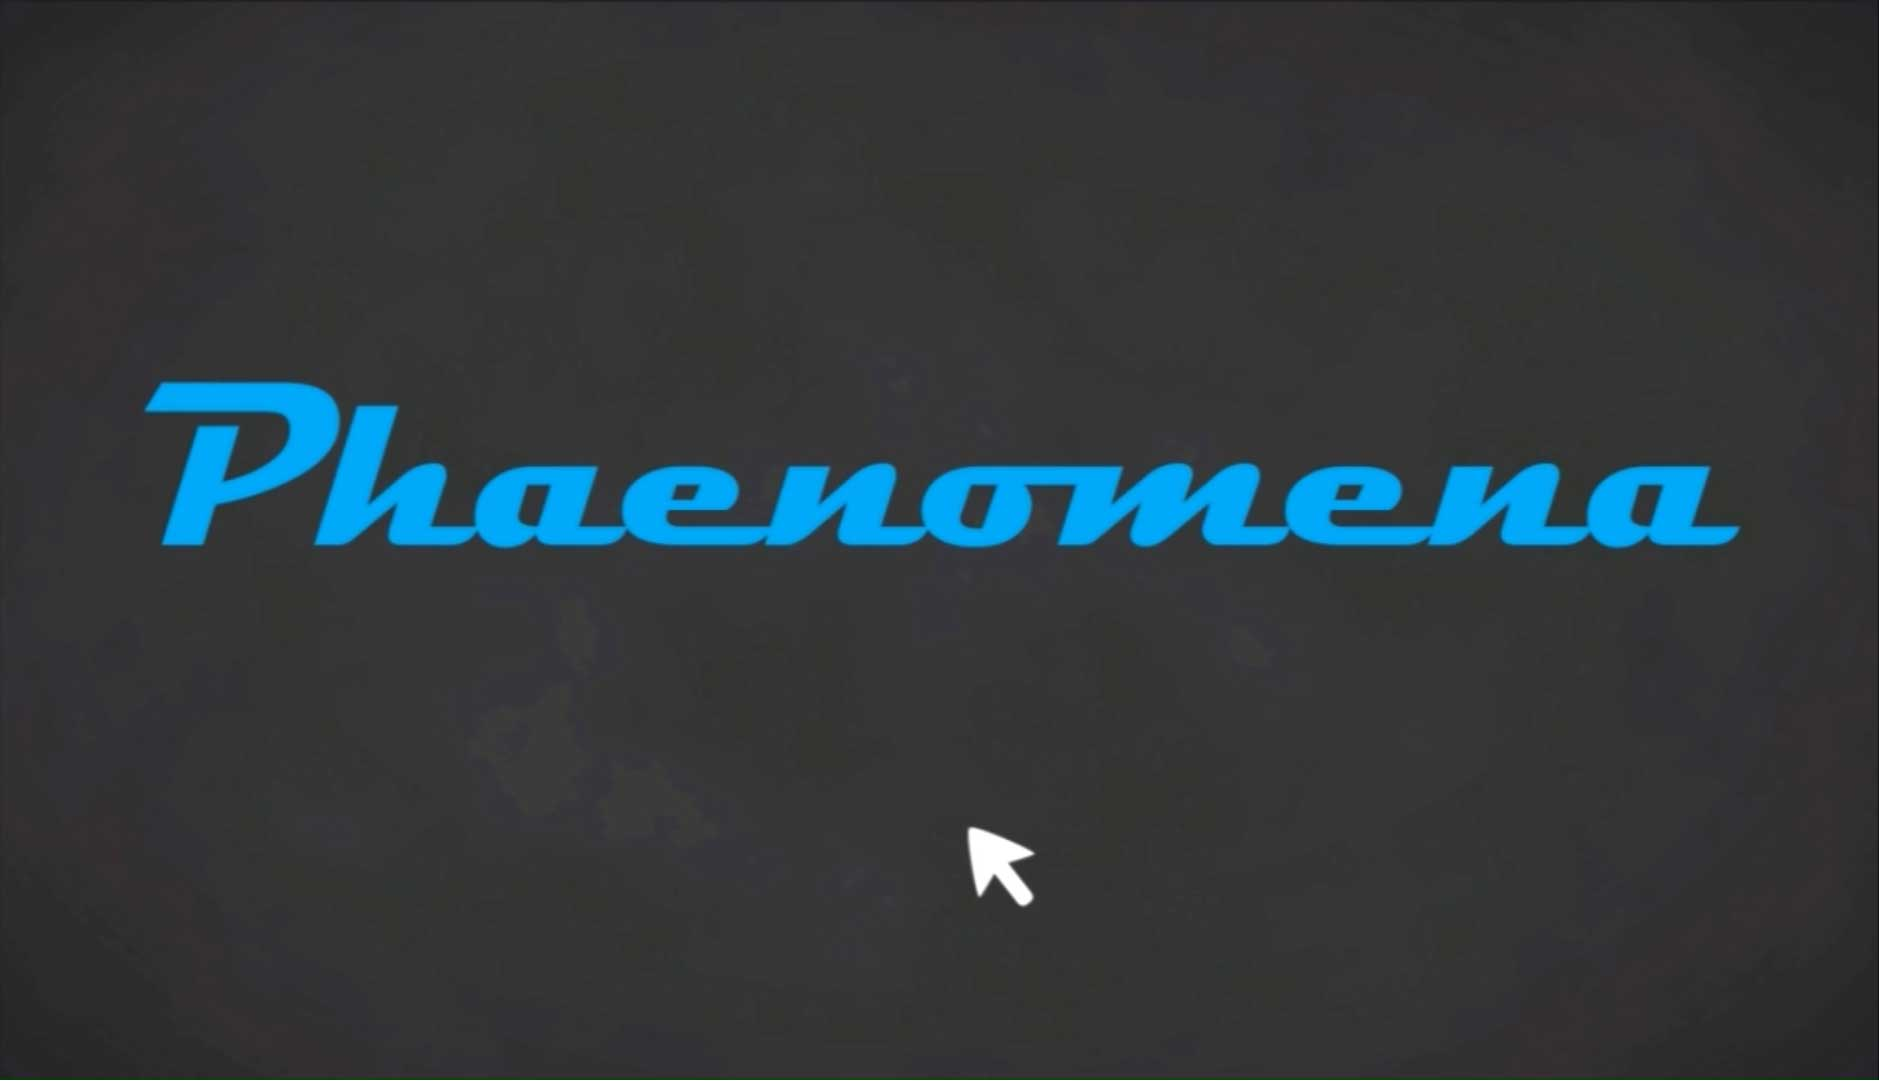 Video Phaenomena